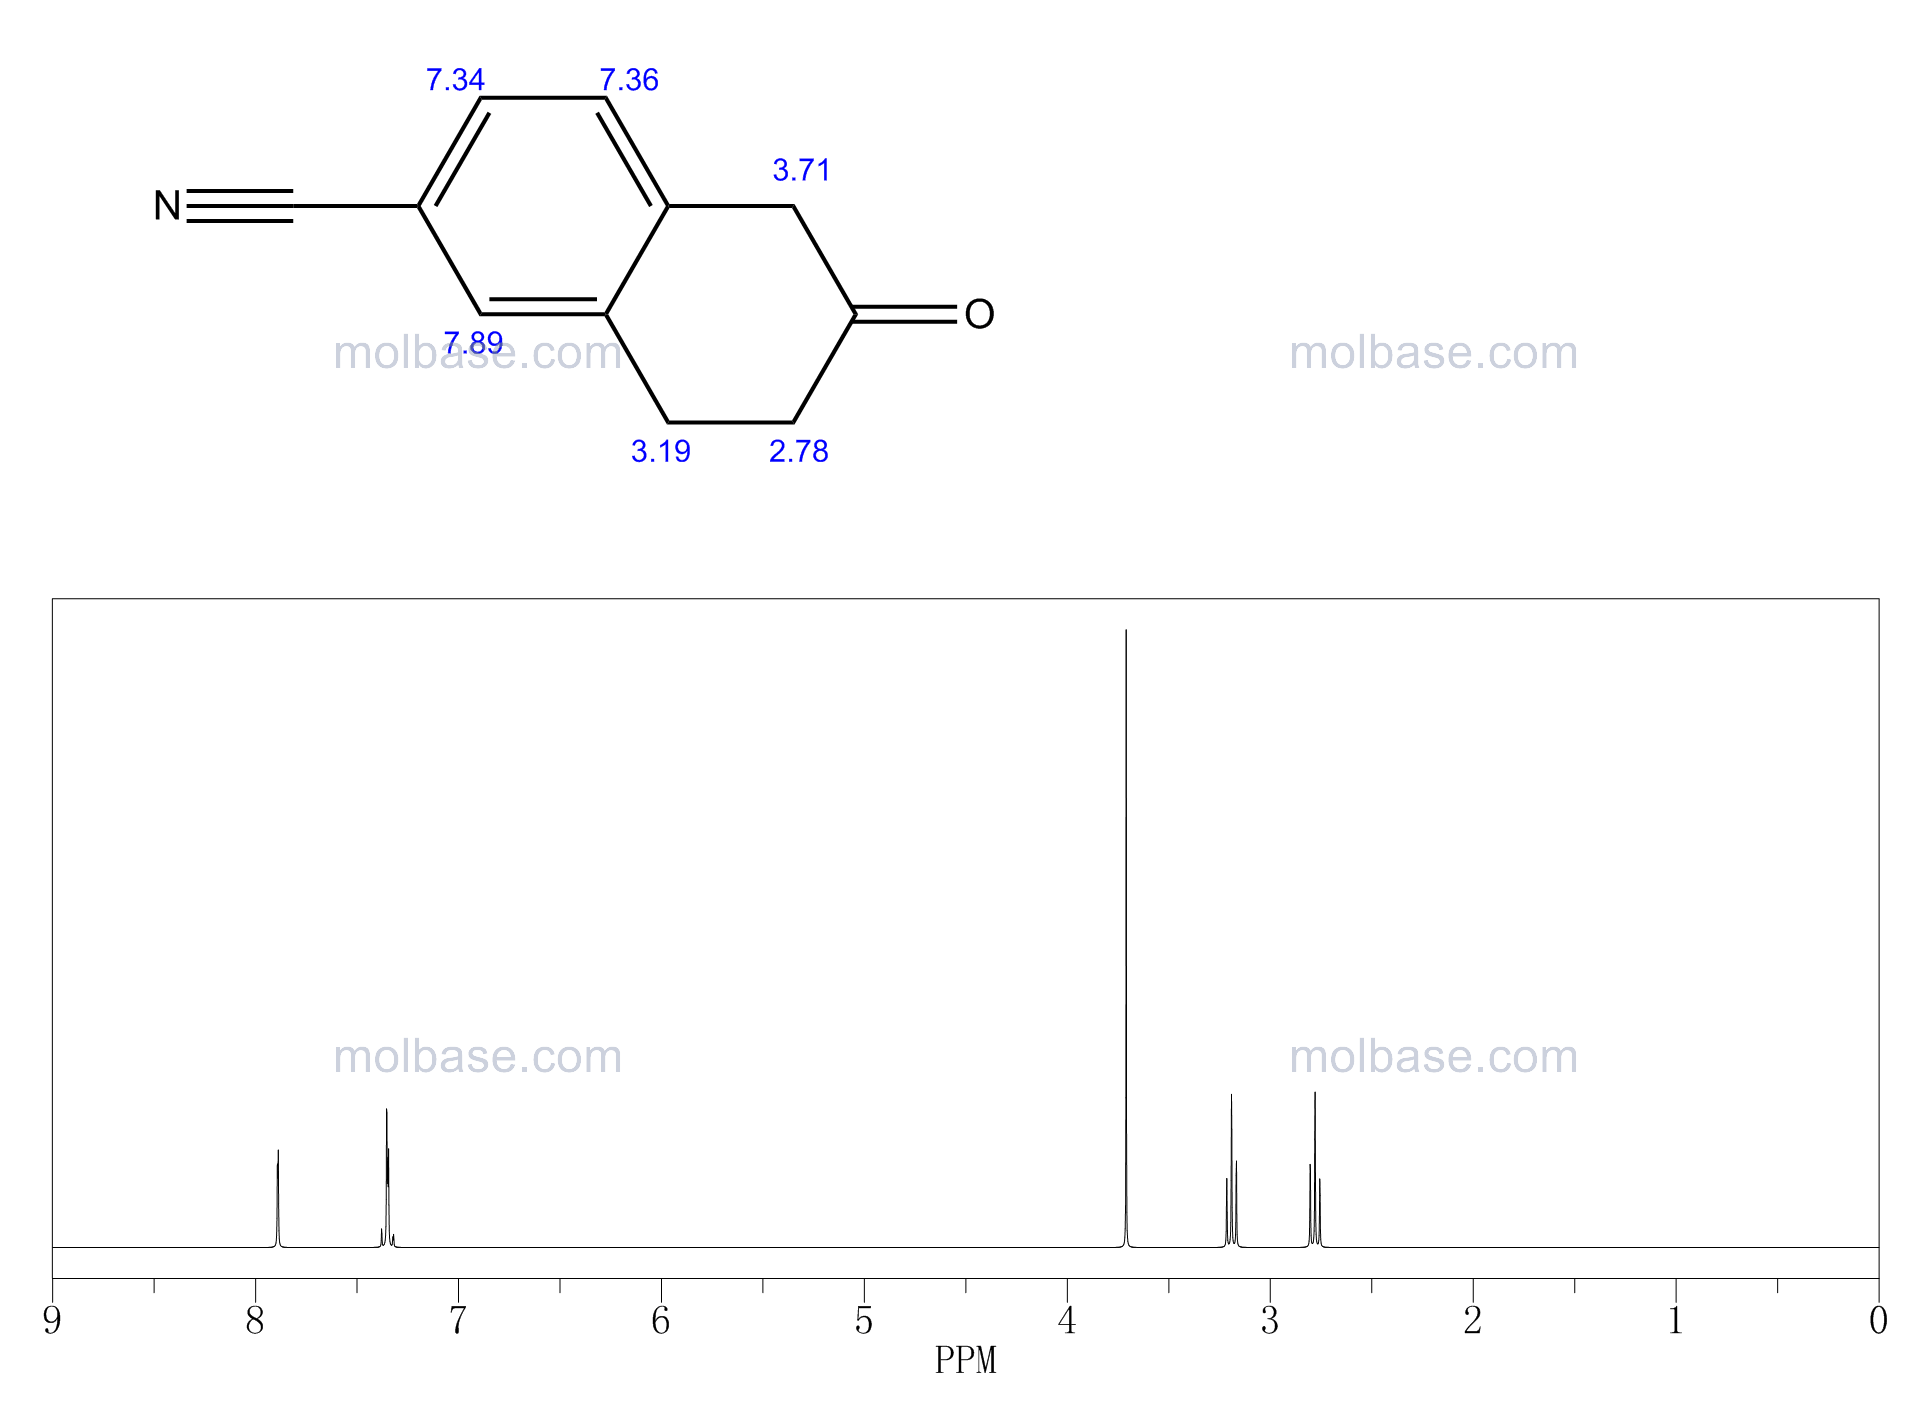 6-oxo-7,8-dihydro-5H-naphthalene-2-carbonitrile NMR spectra analysis, Chemical CAS NO. 136081-50-0 NMR spectral analysis, 6-oxo-7,8-dihydro-5H-naphthalene-2-carbonitrile C-NMR spectrum